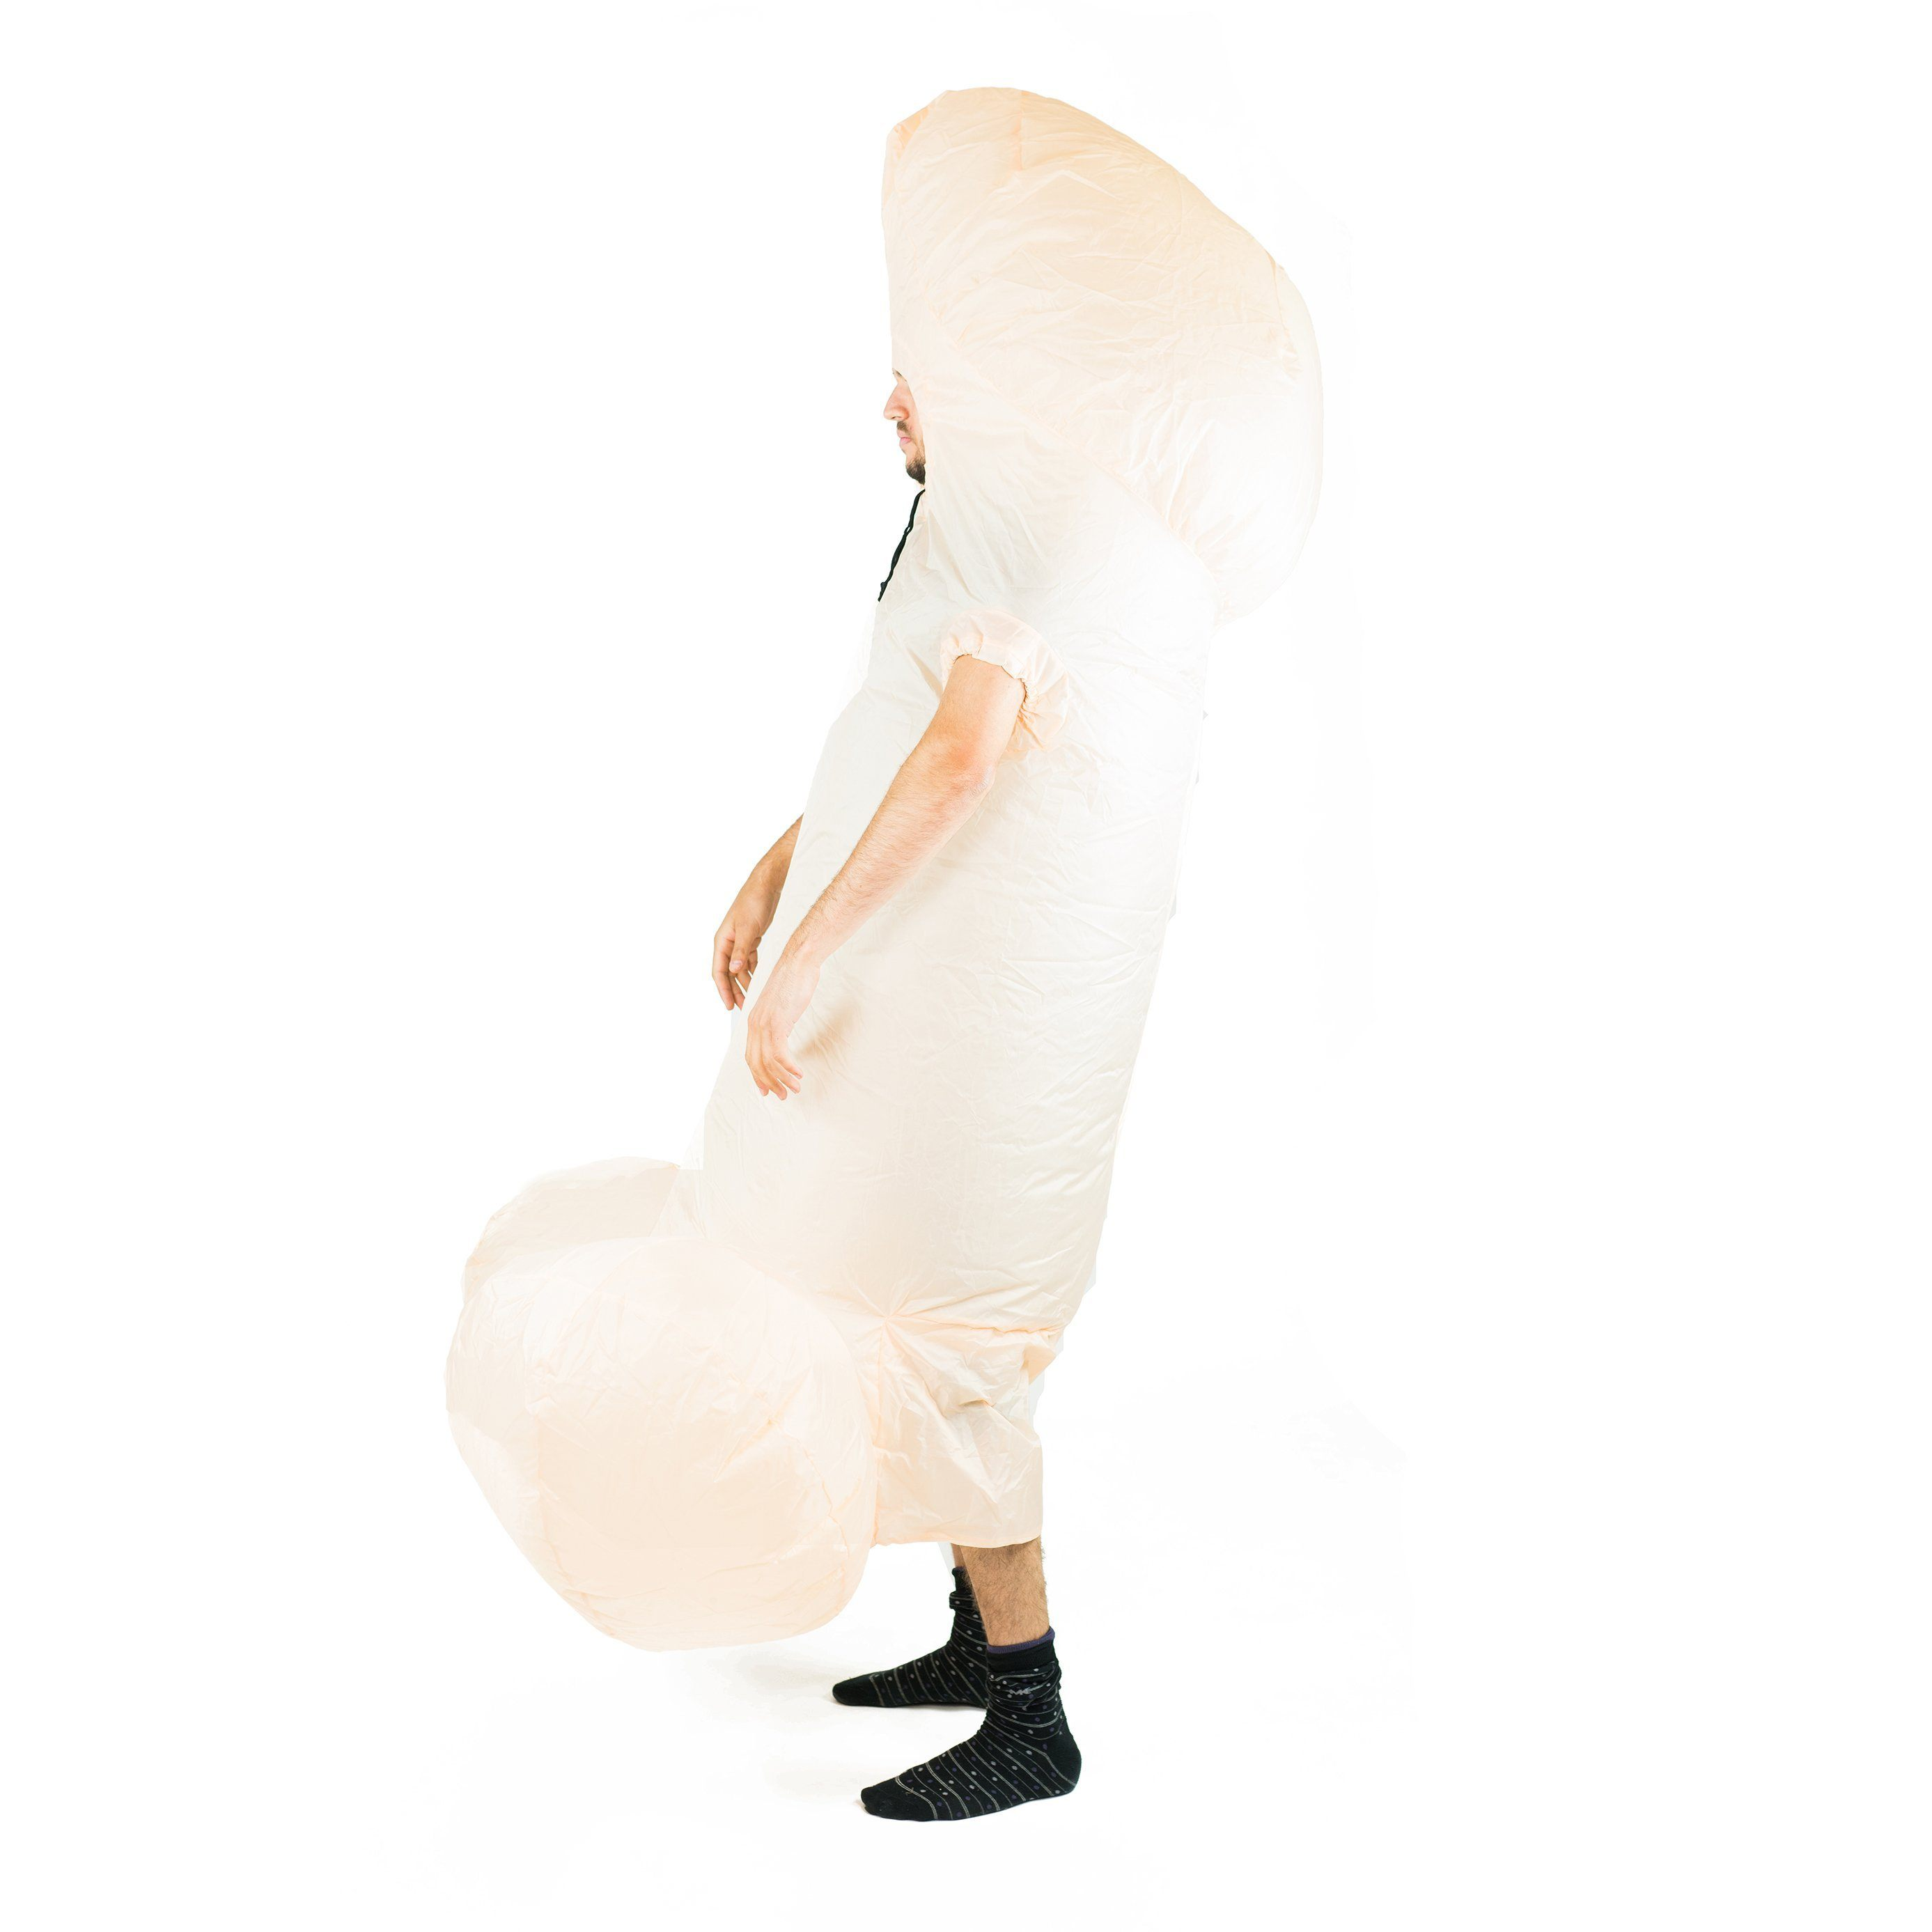 Fancy Dress - White Inflatable Willy Costume